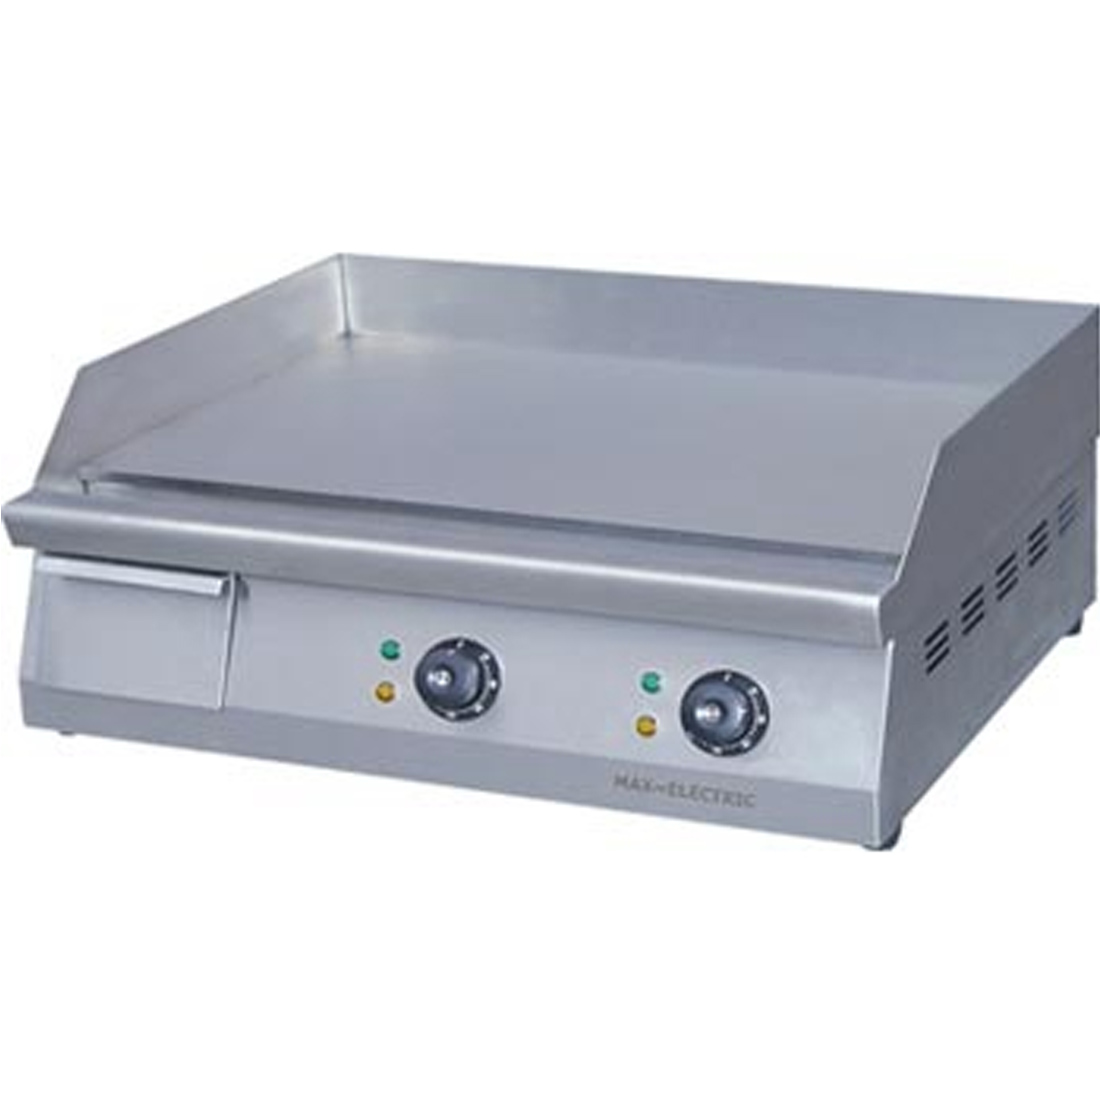 GH-610 MAX~ELECTRIC Griddle